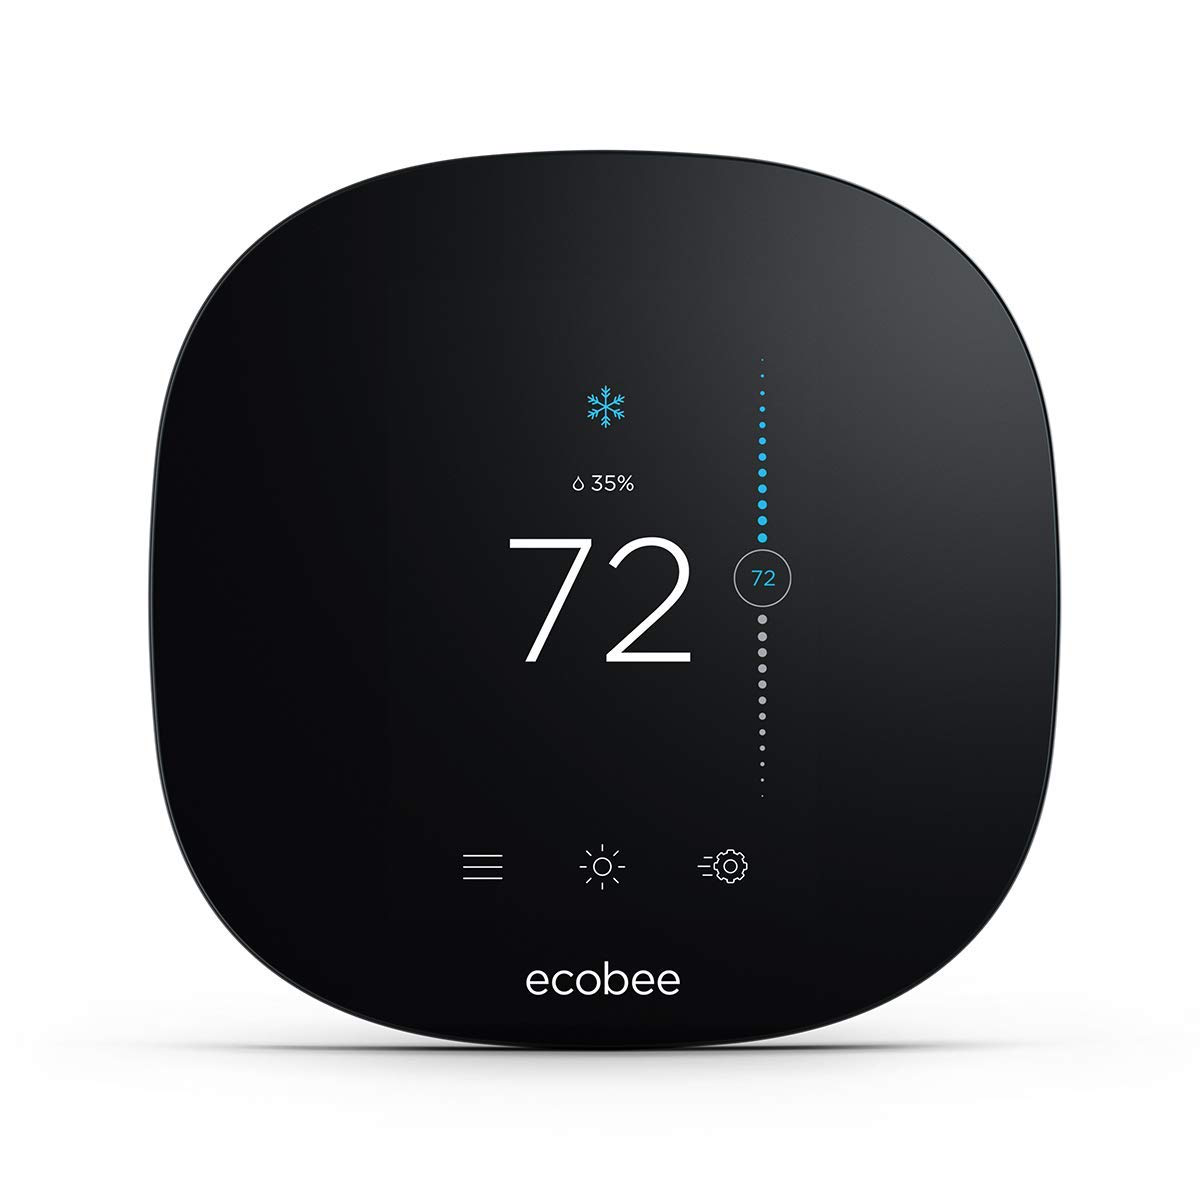 image 35 Top 5 Best Smart Thermostat 2021 - Programmable Thermostat Reviews